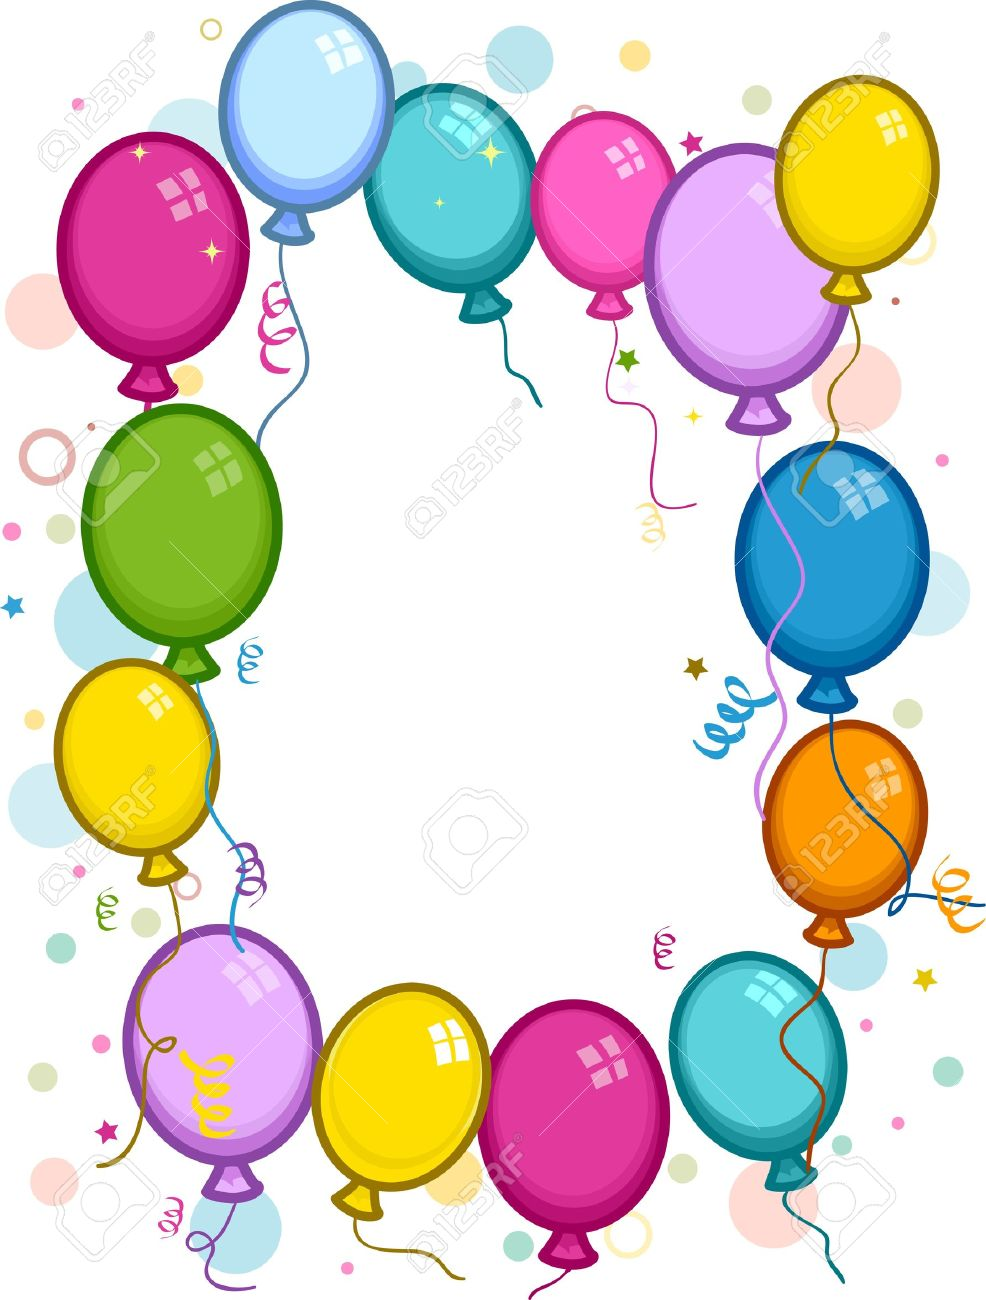 Clip art balloons - Frame Featuring Confetti And Colorful Balloons Stock Photo